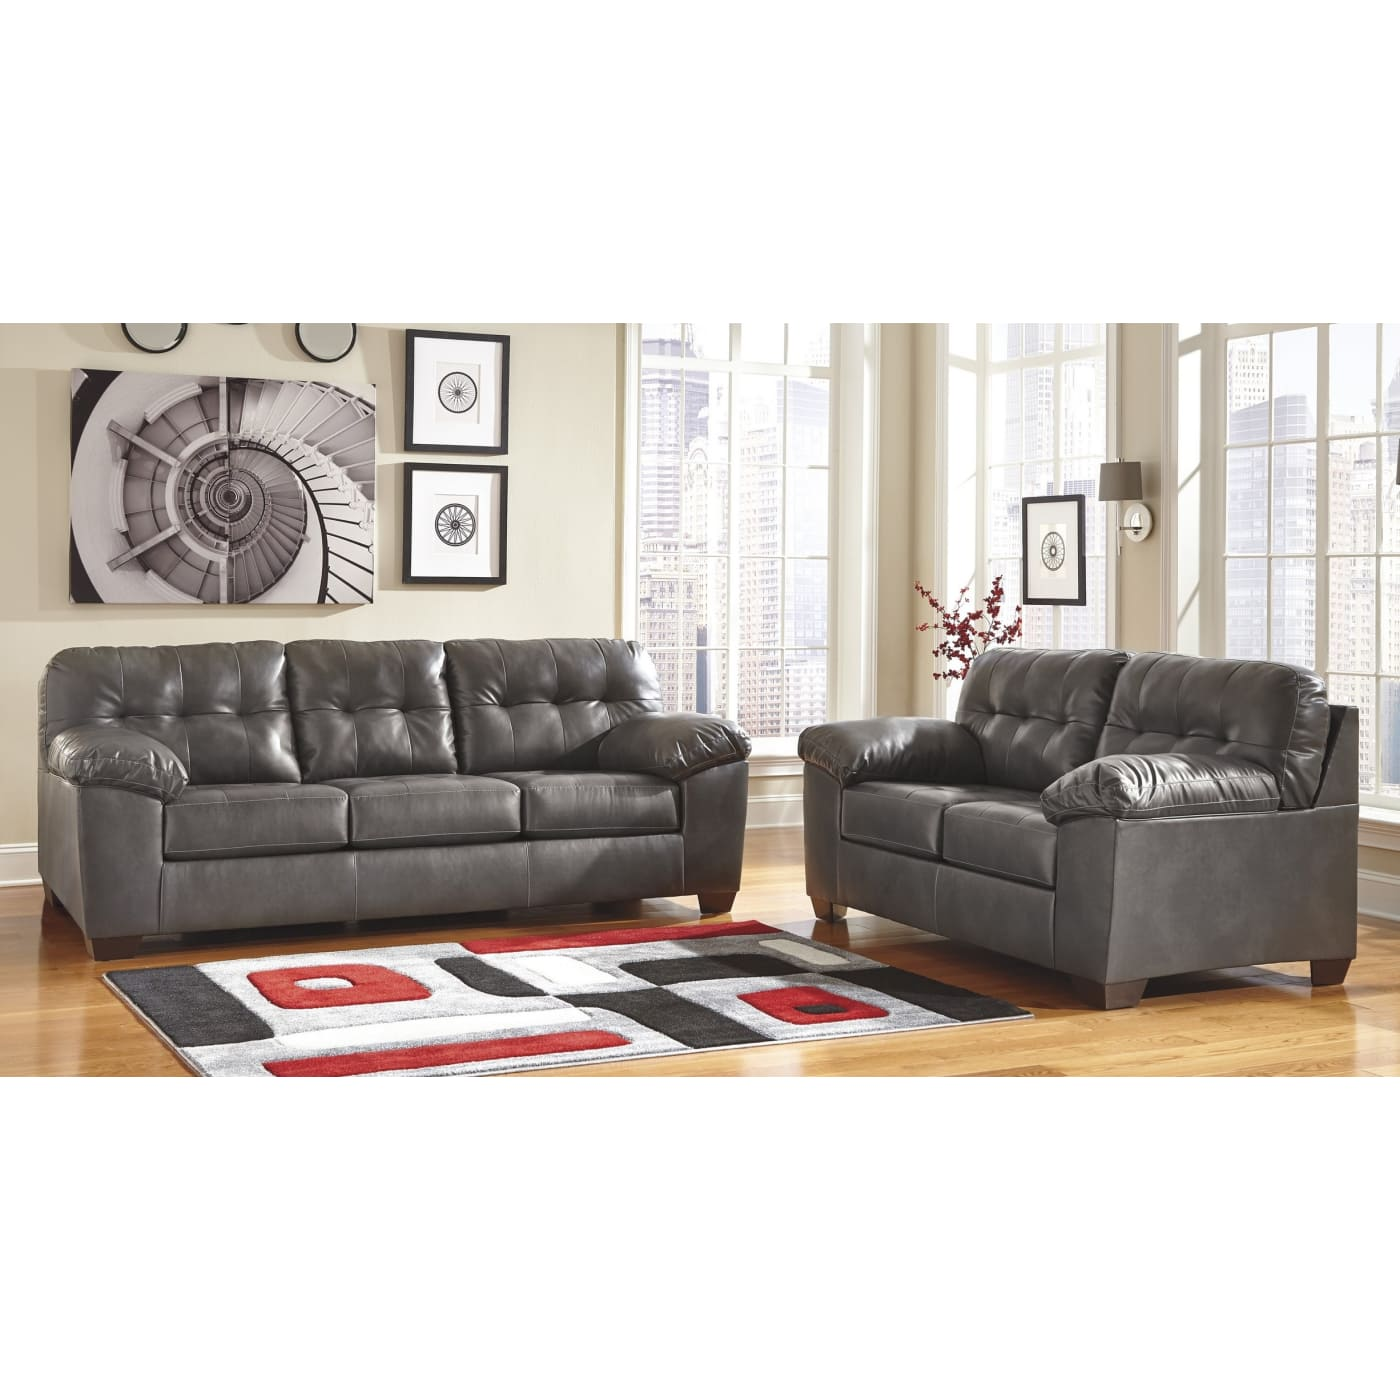 Signature Design By Ashley Alliston DuraBlend Gray 2 Piece Living Room Set  U0026 Reviews   Goedekers.com